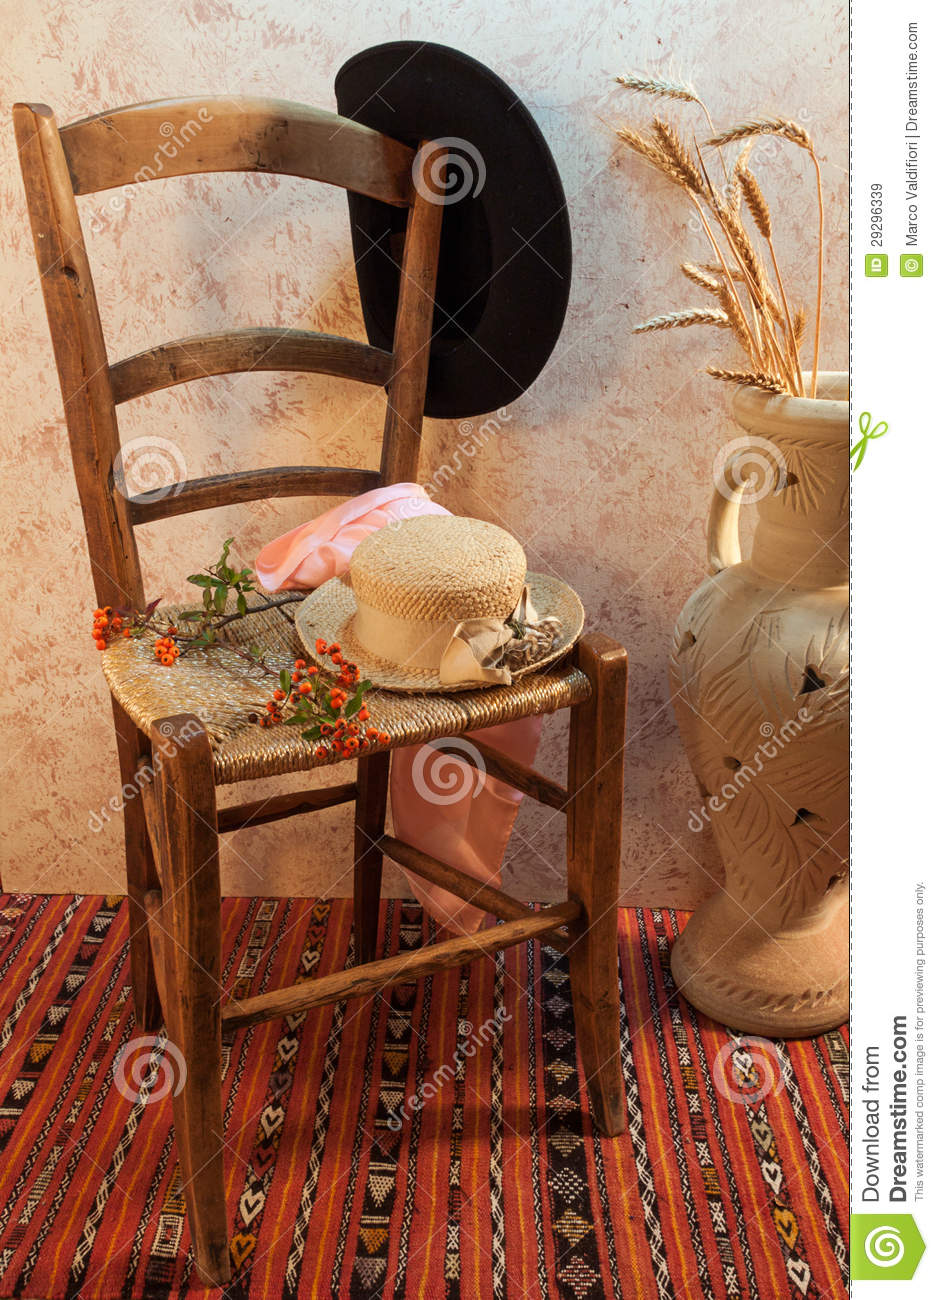 Still Life With Wood Chair Royalty Free Stock Images ...